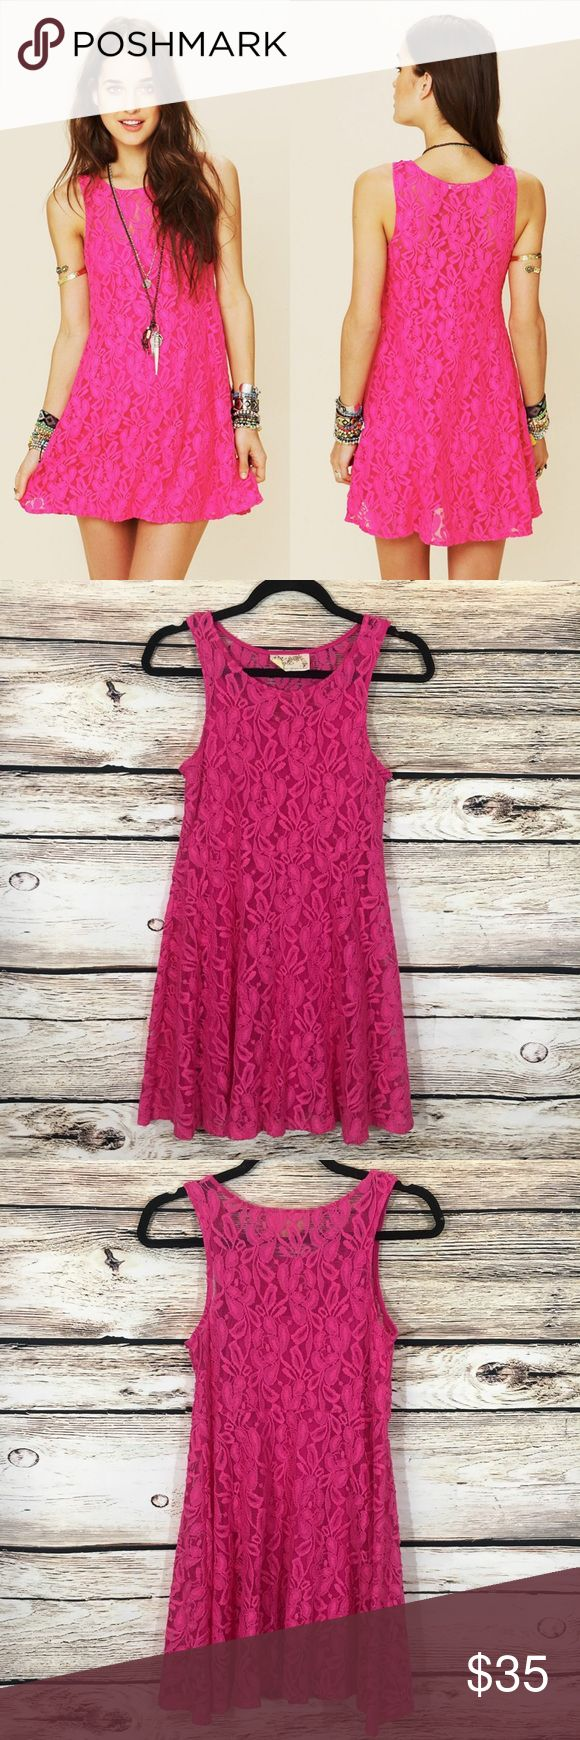 "Free People miles of lace hot pink mini dress XS Free People miles of lace dress in hot pink, built in slip, skater style, fit flare dress. Size XS, bust 32"", waist 32"", length 34"" in great condition Free People Dresses Mini"